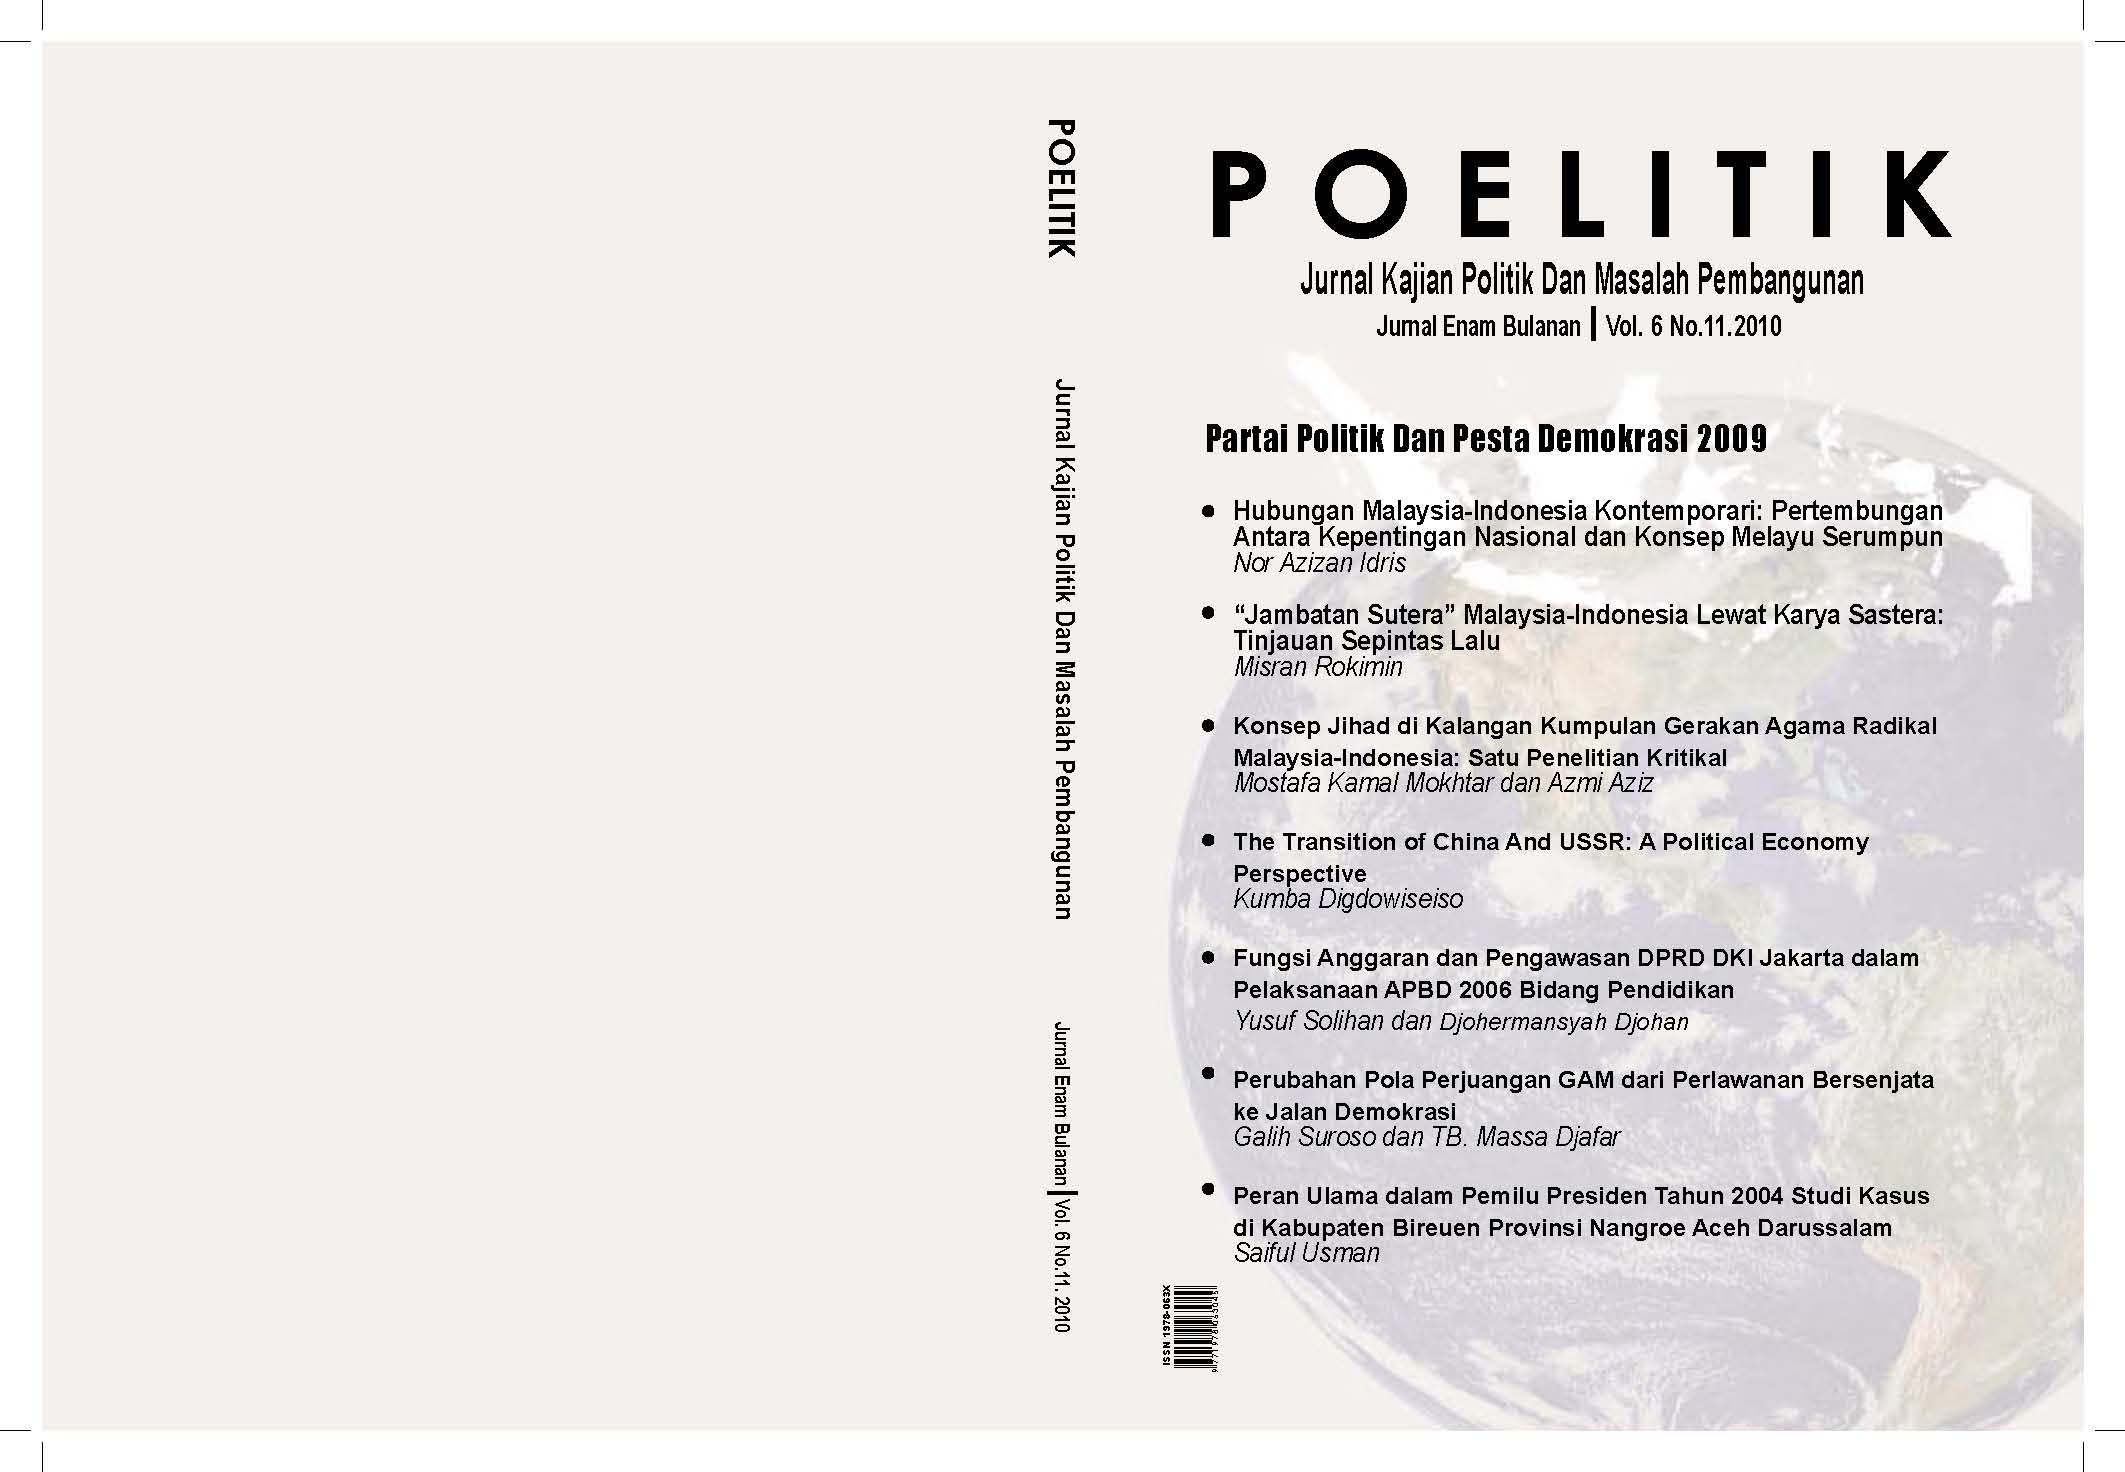 Jurnal Poelitik Volume 6/No.11/2010